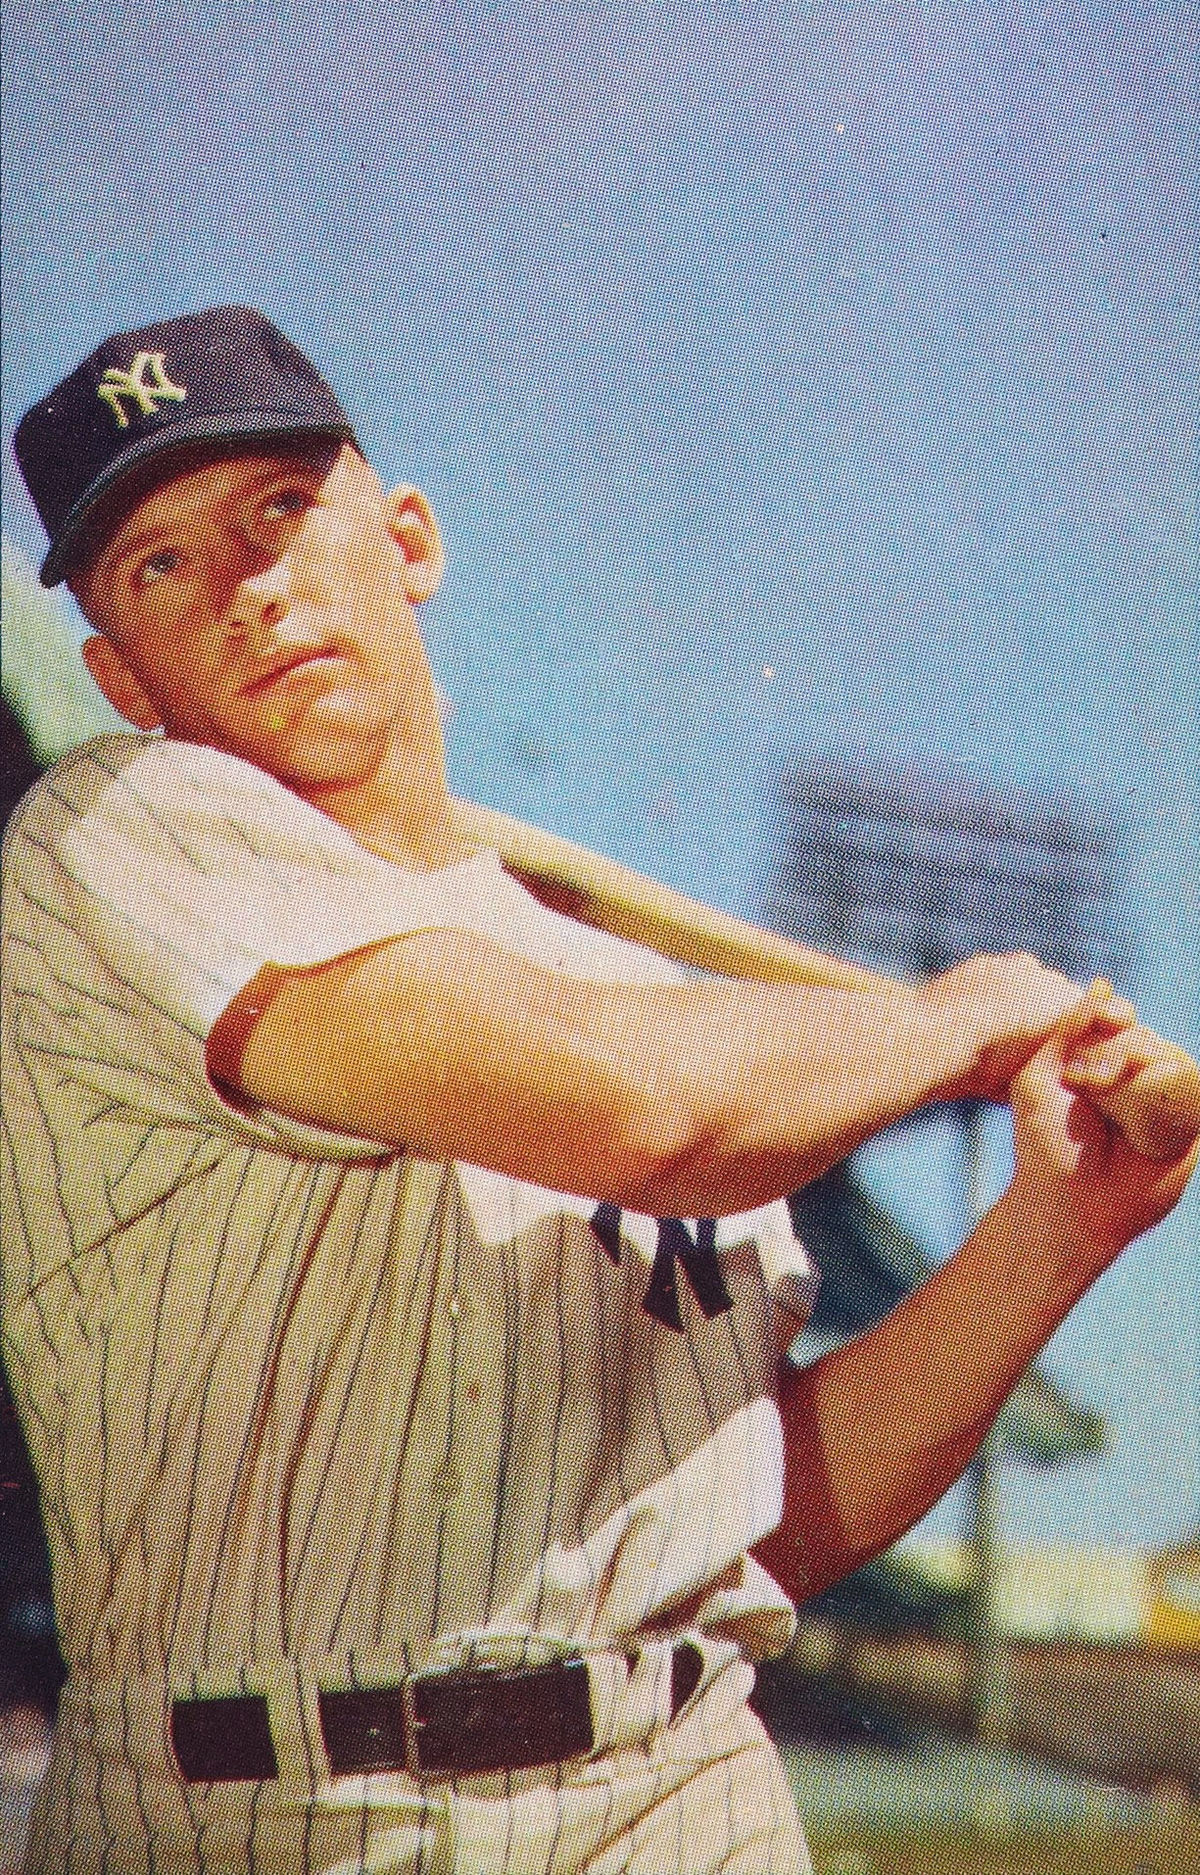 Mickey Mantle Biography